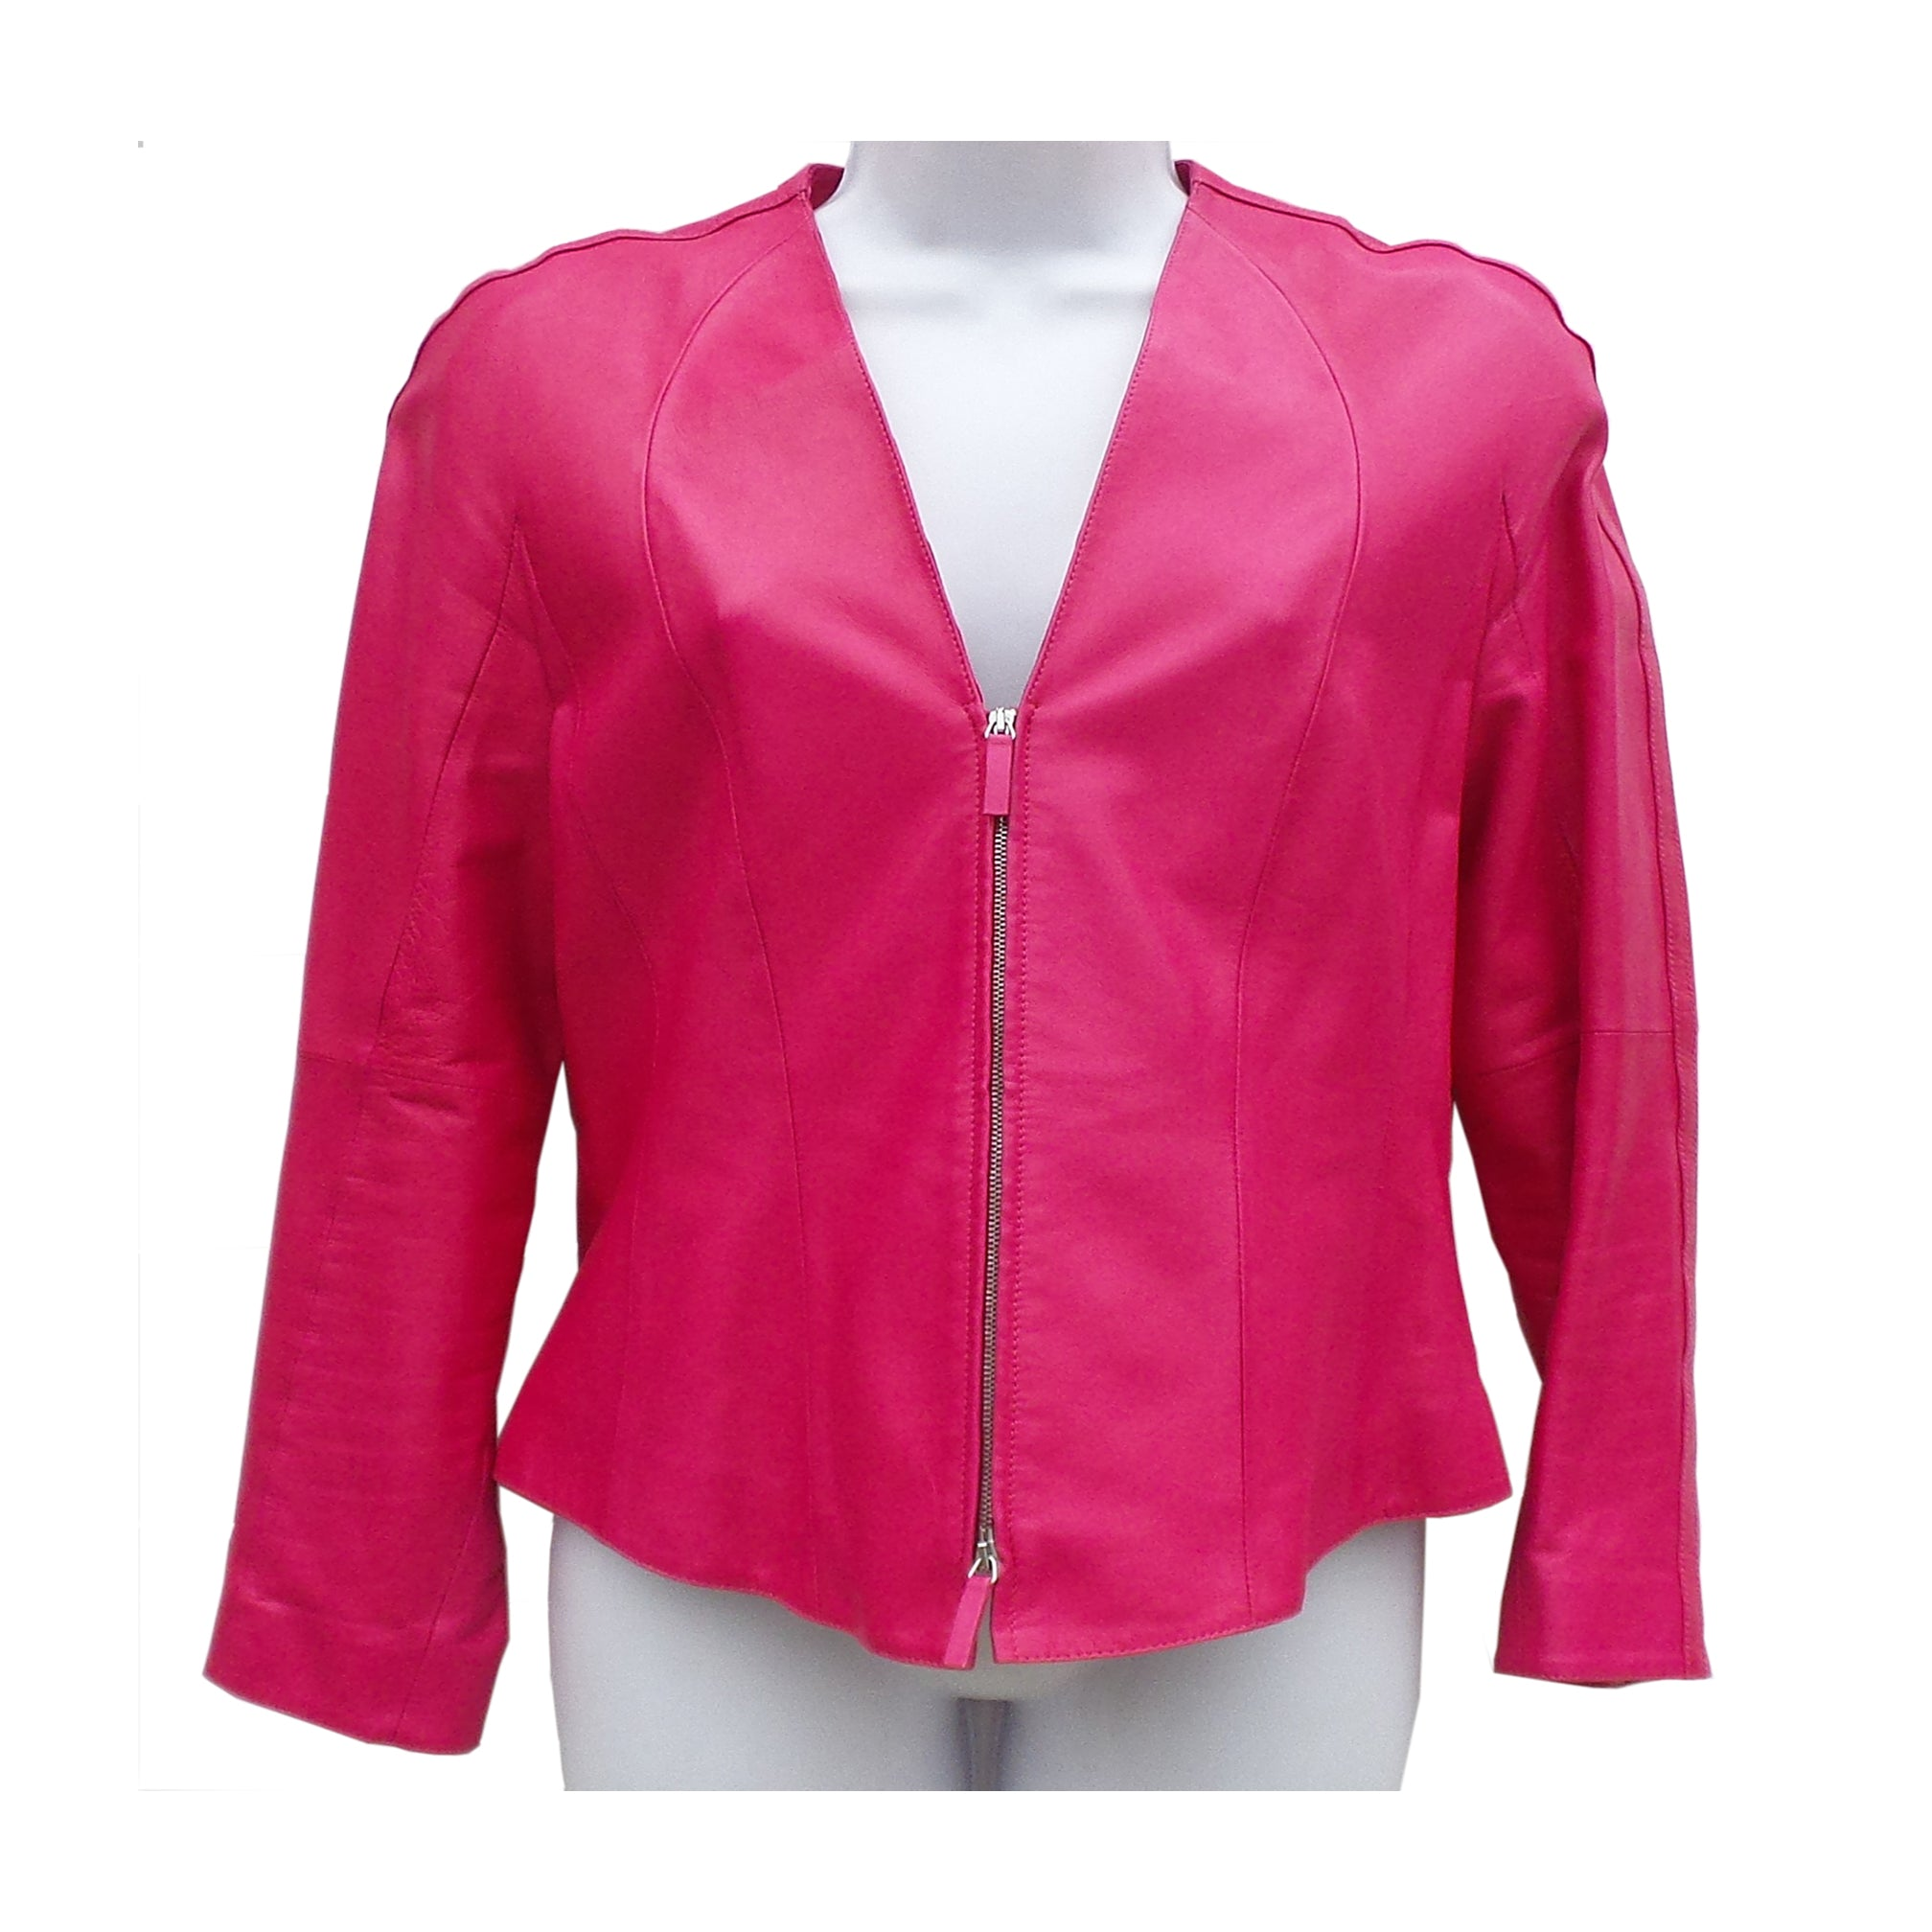 'Sold' GIORGIO ARMANI Dark Pink Magenta Fuchsia Zip Leather Blazer Jacket S